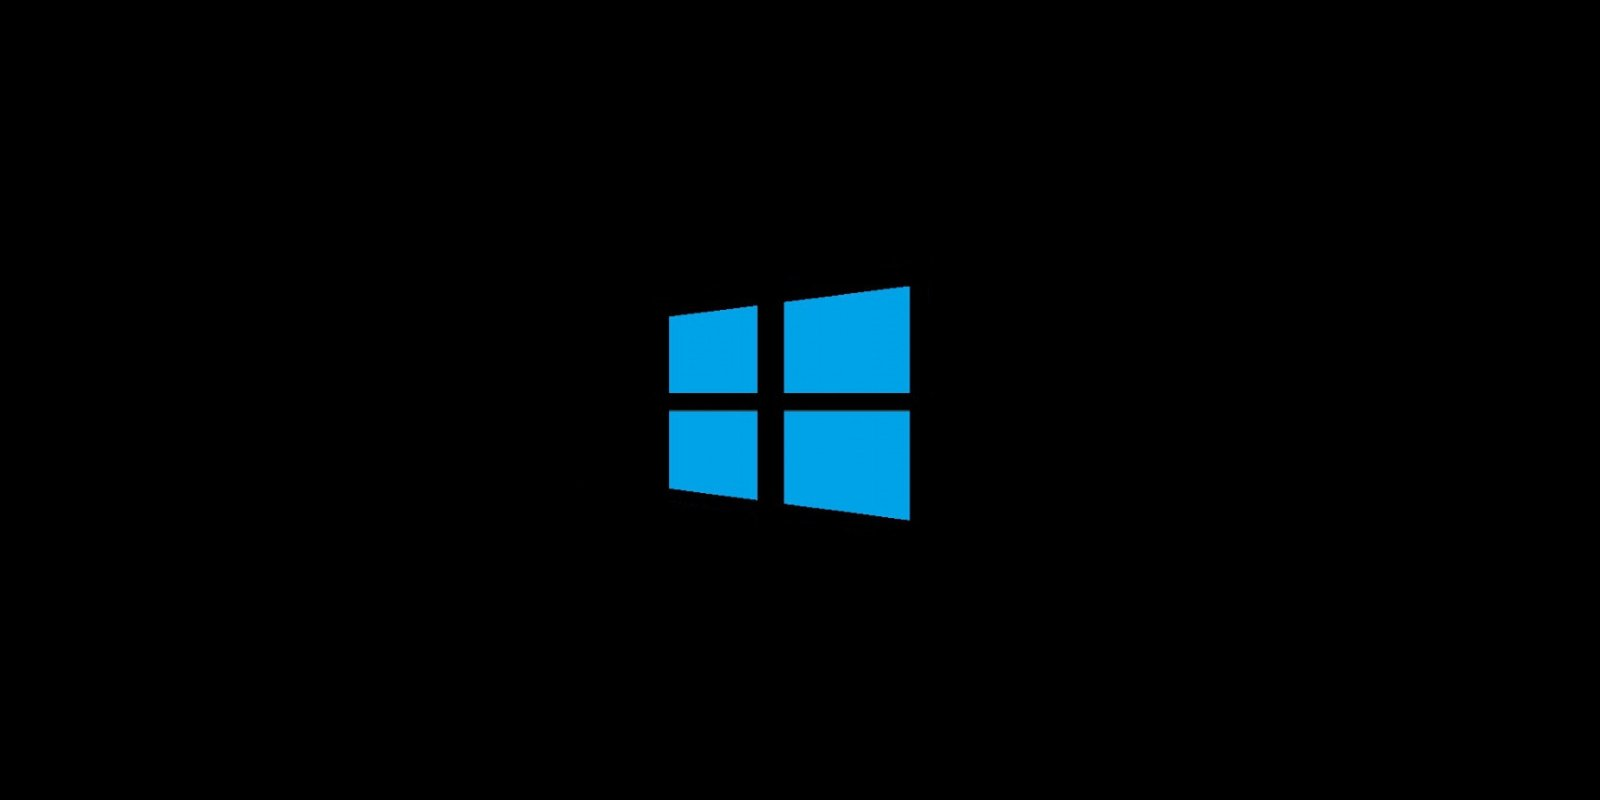 Microsoft partially fixes Windows 10 Conexant audio driver issues